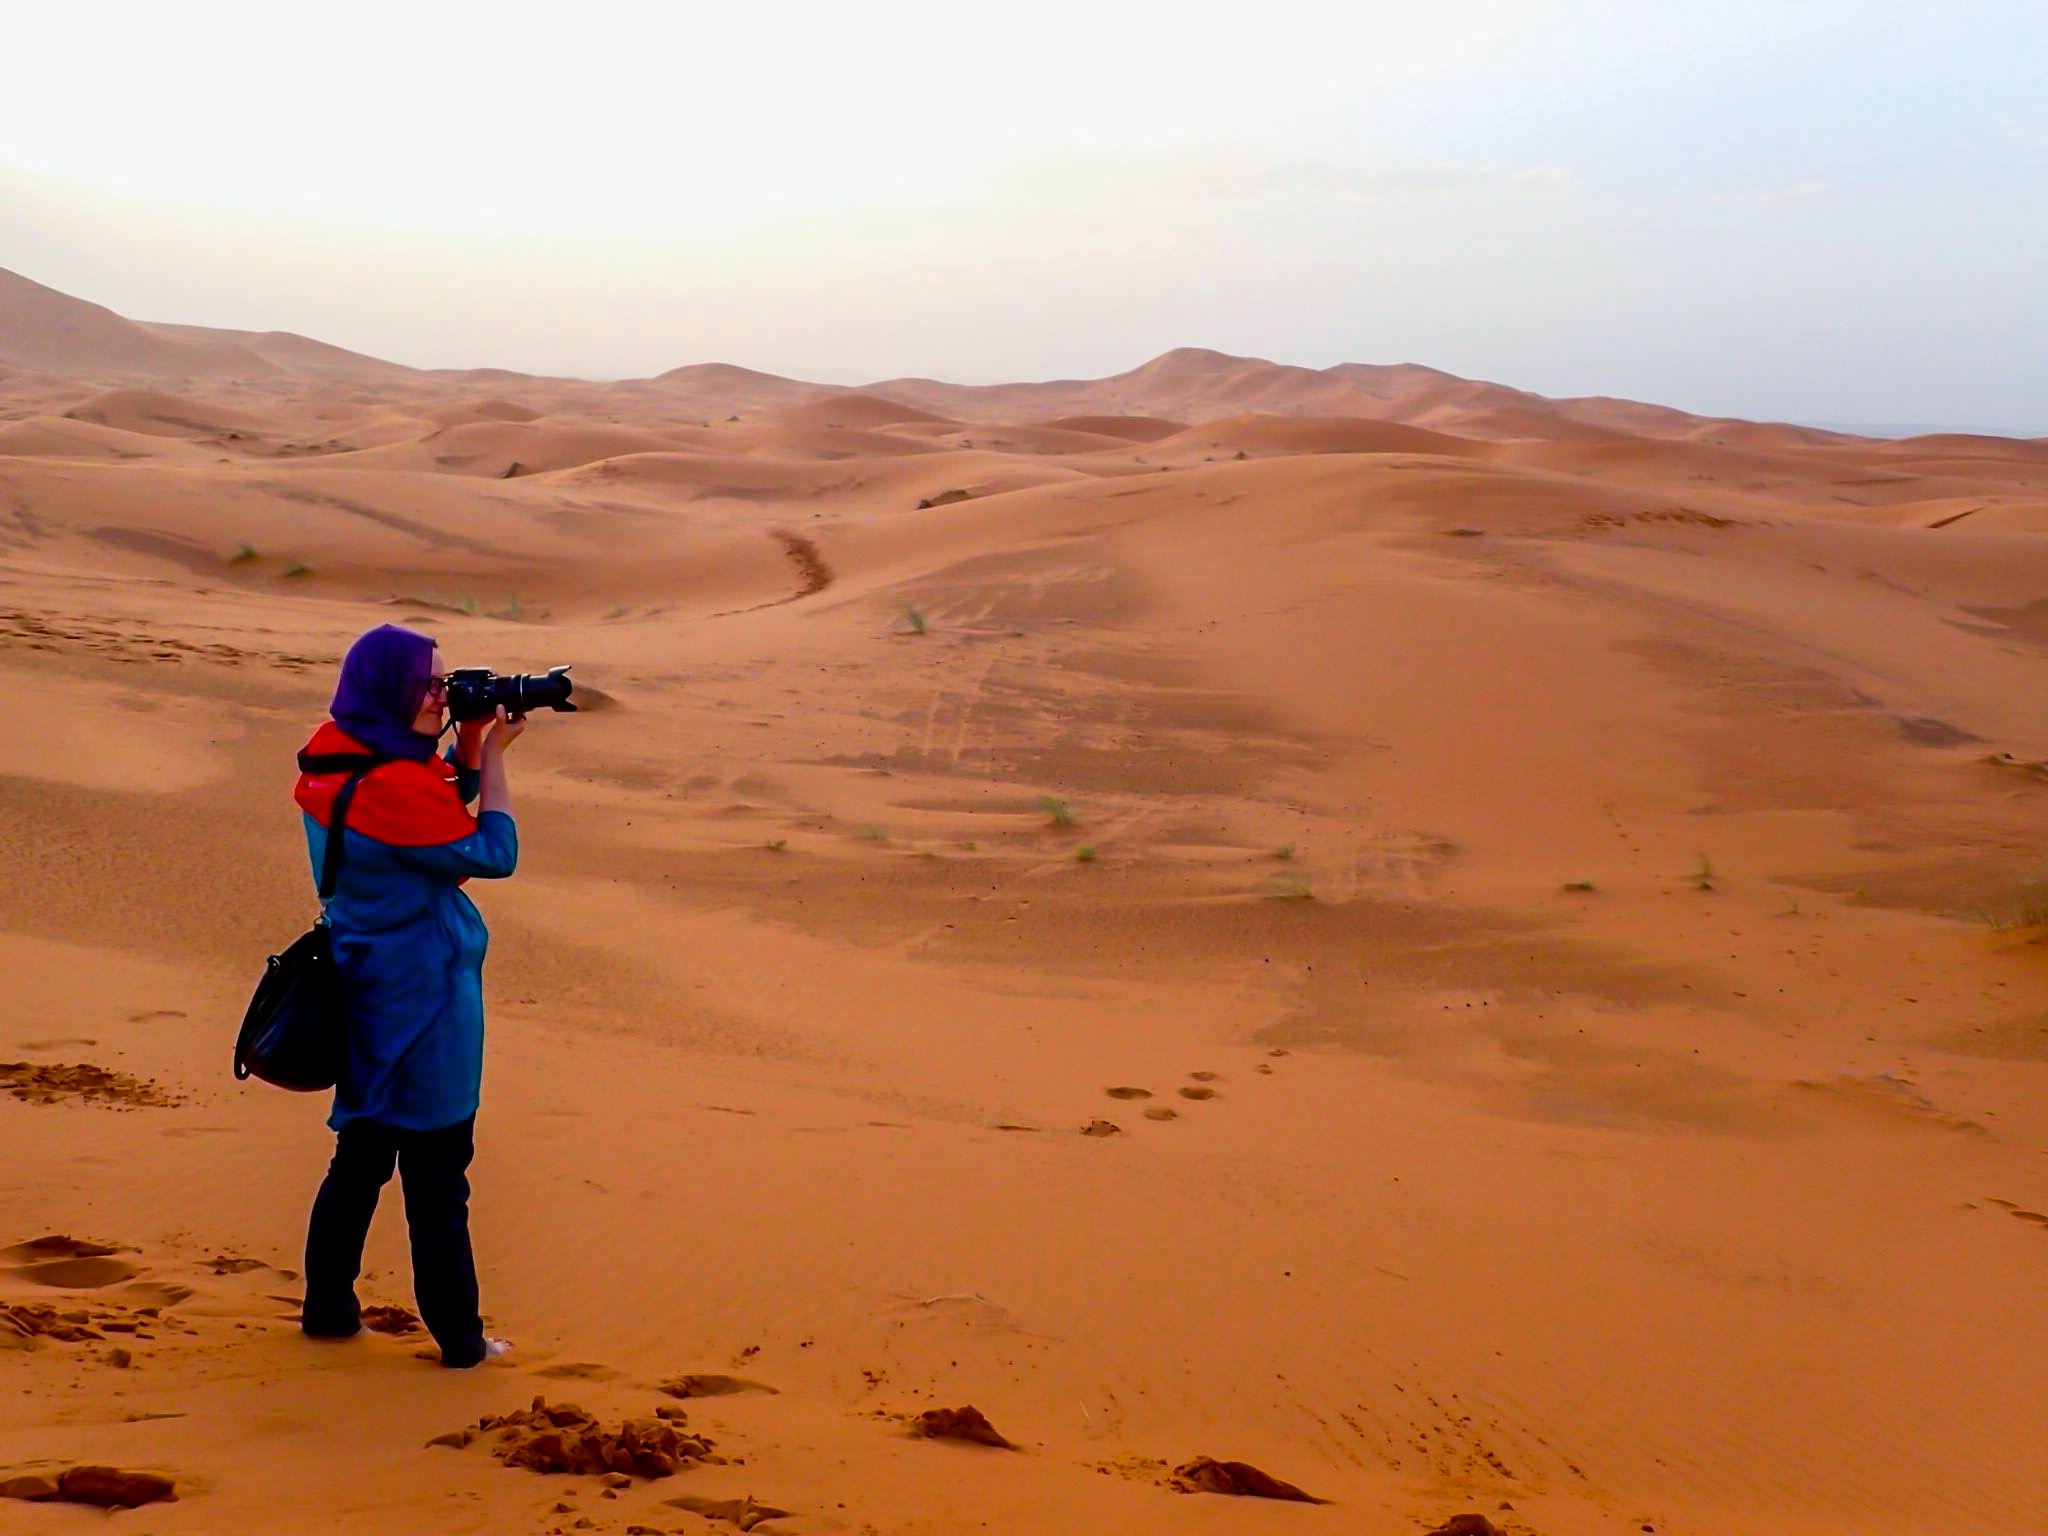 ON THE JOB  — Brea Persing, Goshen, stands on the sand dunes of Morocco zooming in on a string of camels in the distance. Persing is a photographer who partners with nonprofit organizations and social entrepreneurs to raise awareness for their cause. She also works with businesses in the travel and hospitality industry and teams up with individuals who want a vacation photographer. (Photo Provided)